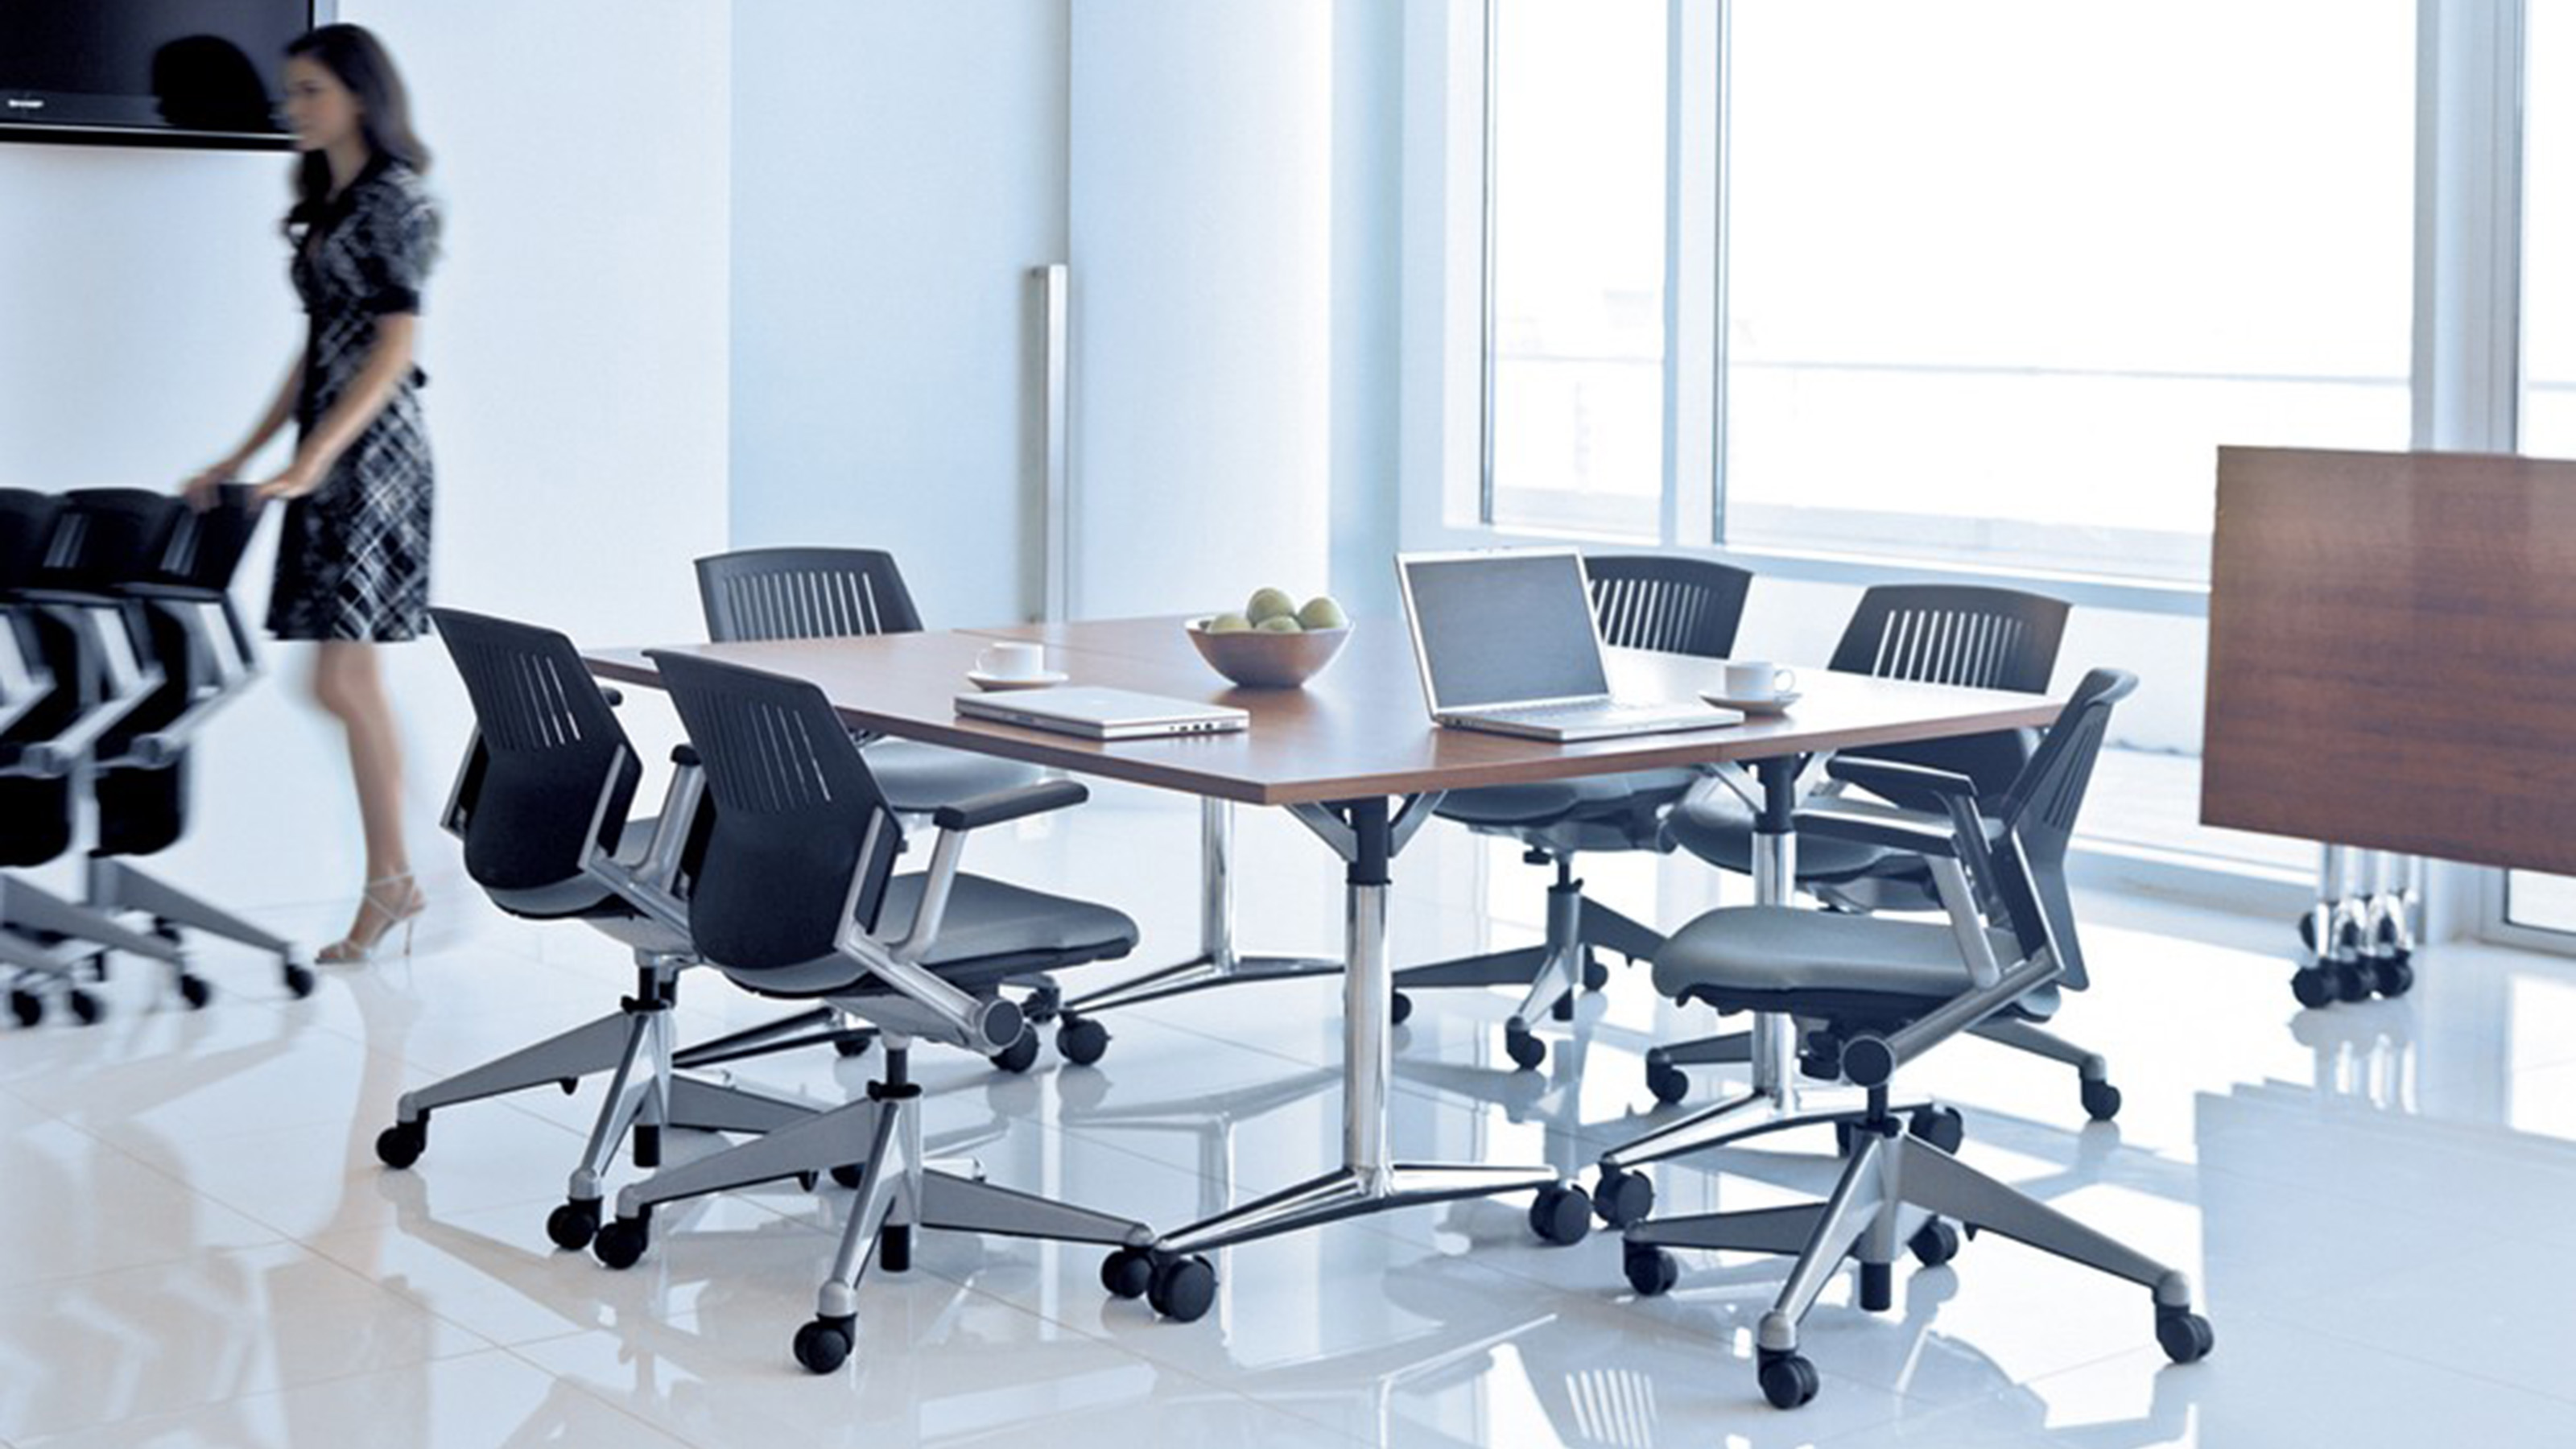 akira multi-purpose table - steelcase